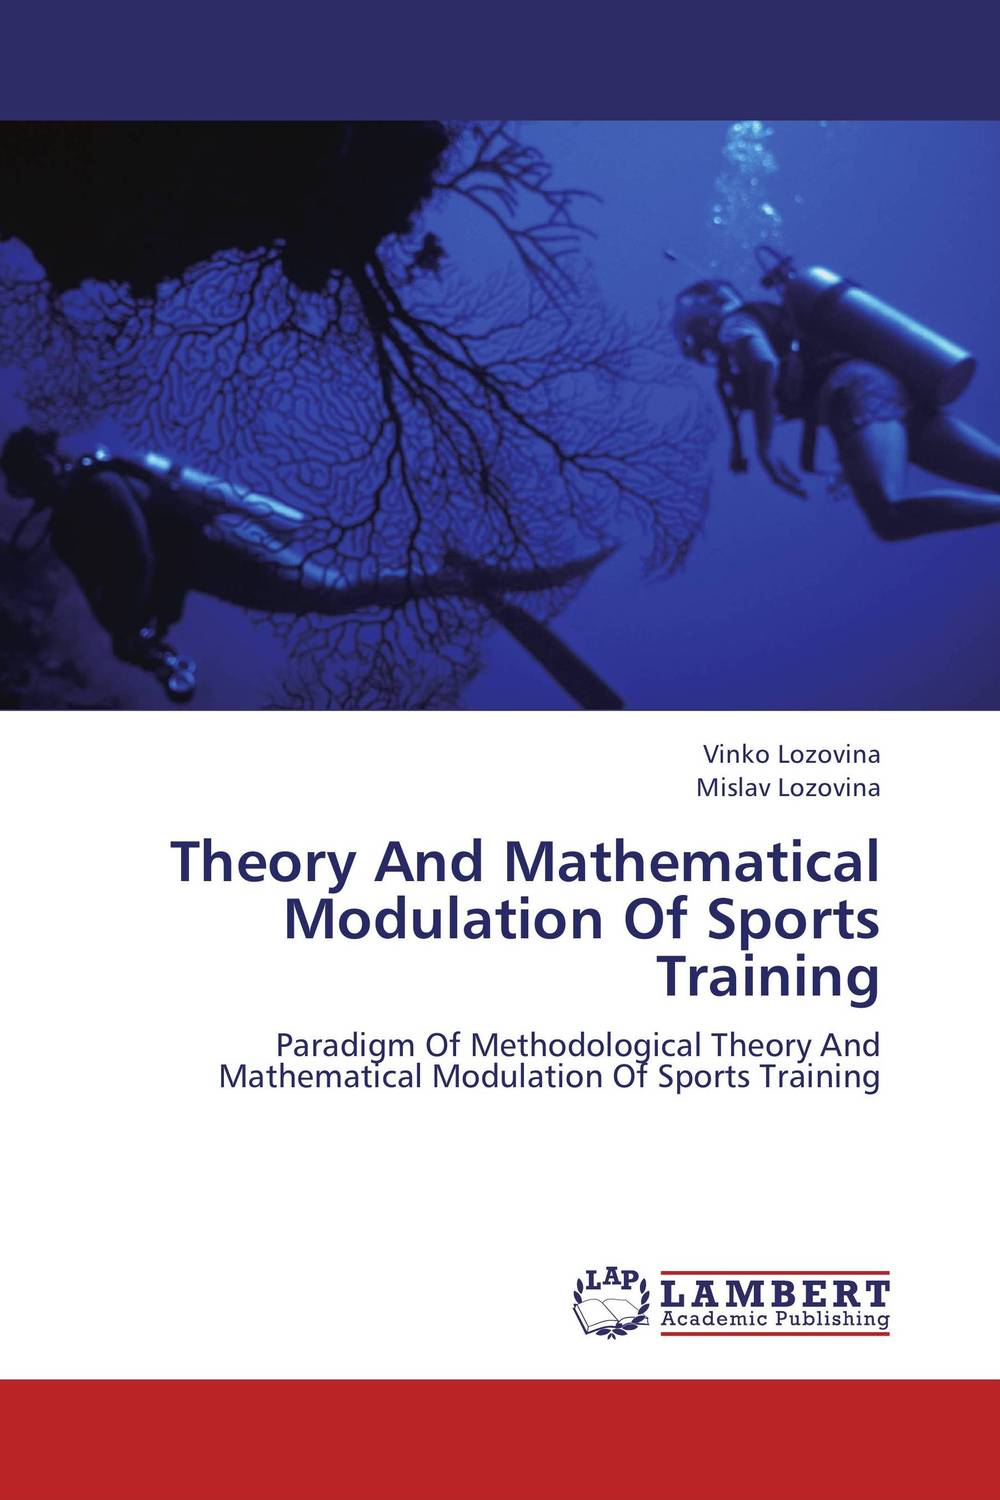 Theory And Mathematical Modulation Of Sports Training